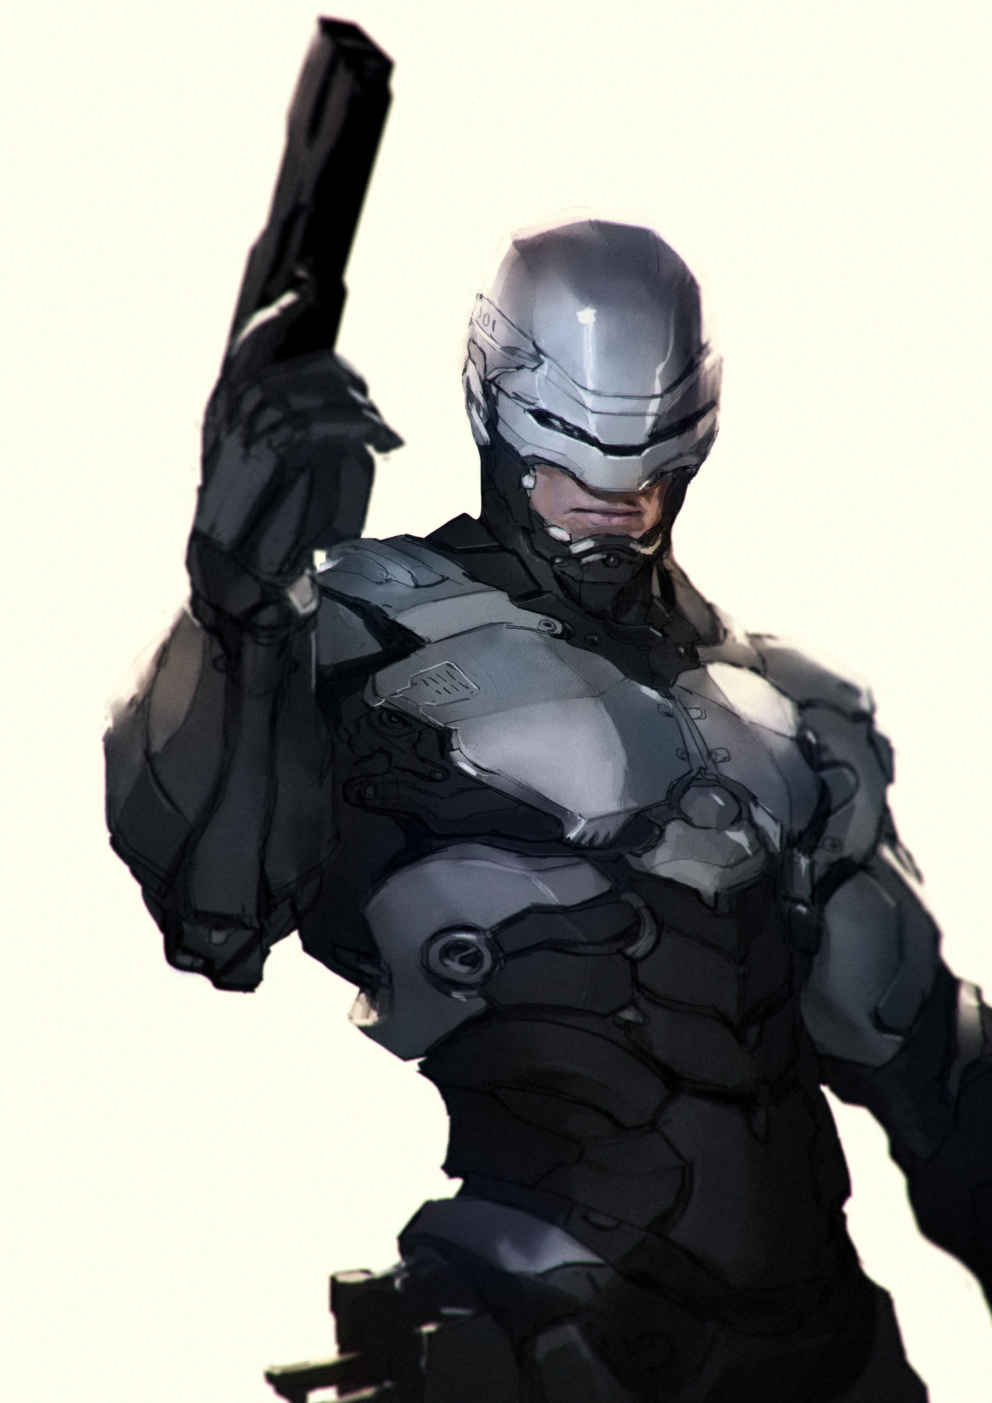 Robocop re-design attempt